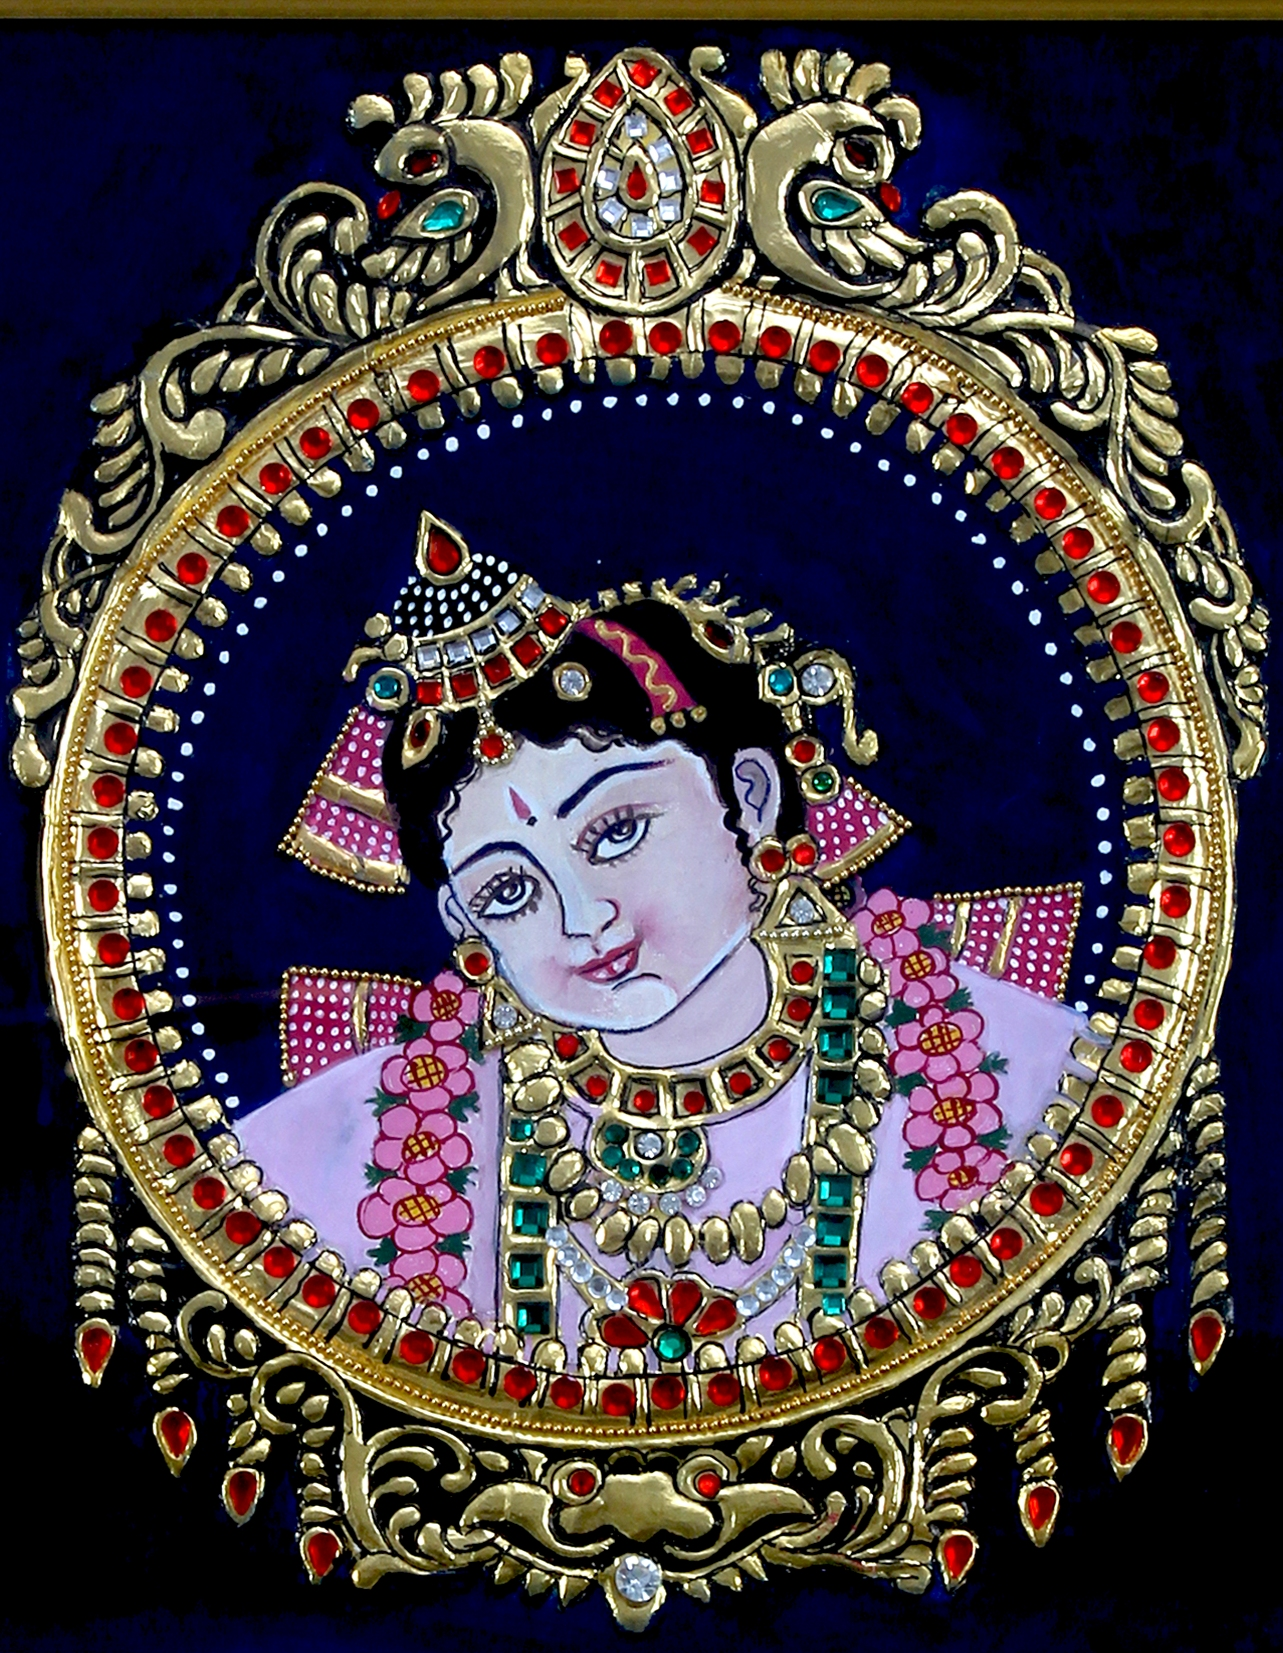 Tanjore Painting of Gopal ji Face